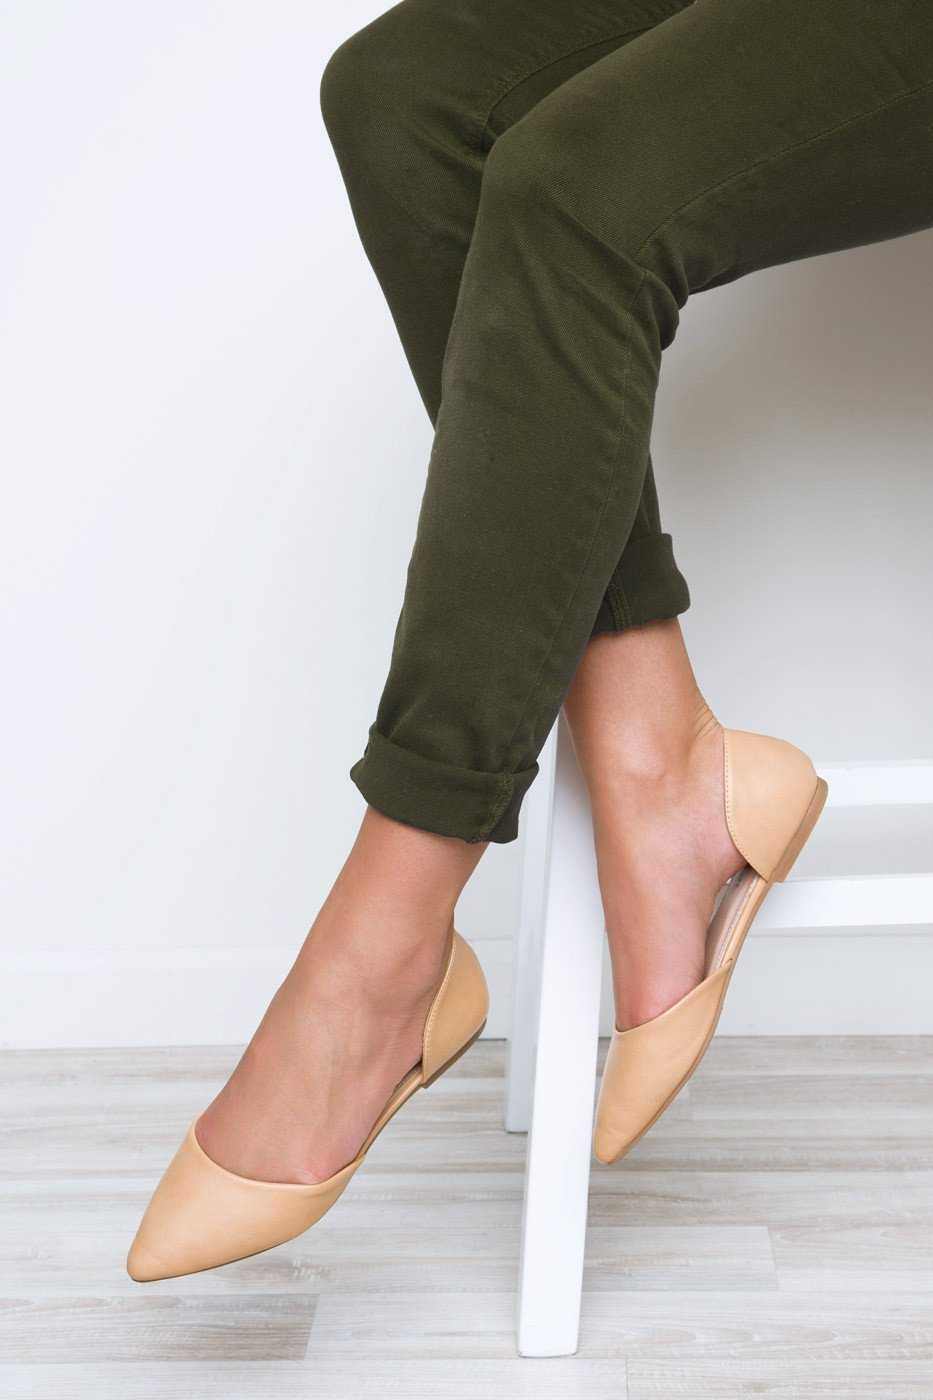 Https Daily Austin Wedges Montana Beige Shoes All That Flats Nude 1v1536388087